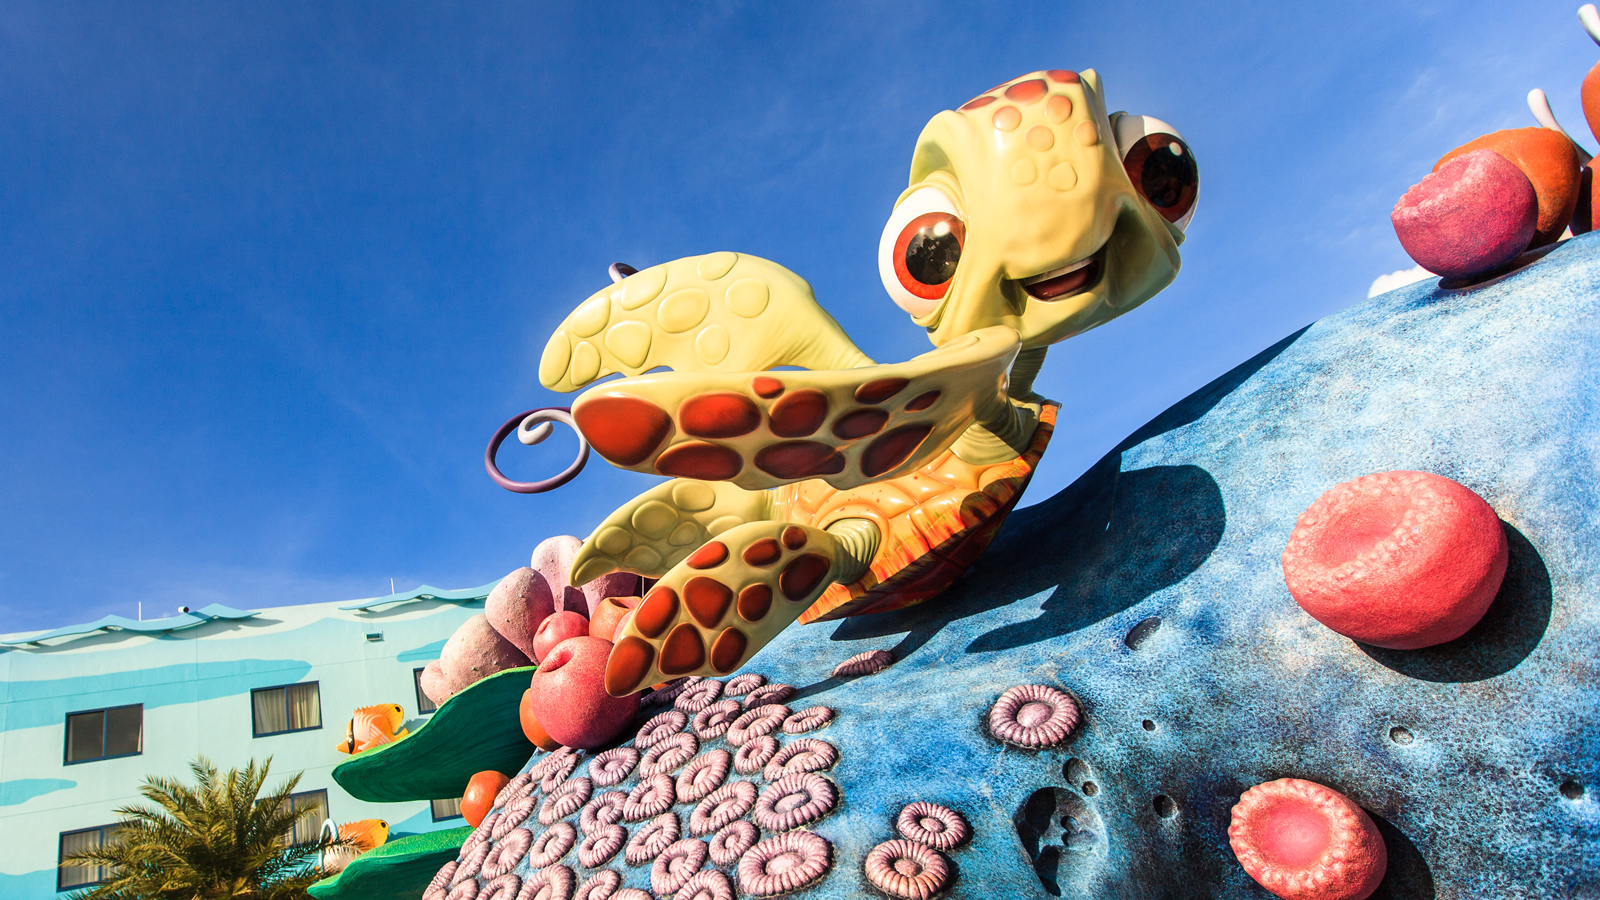 Squirt, le bébé tortue de mer, sourit et prend la pose devant le Disney's Art of Animation Resort